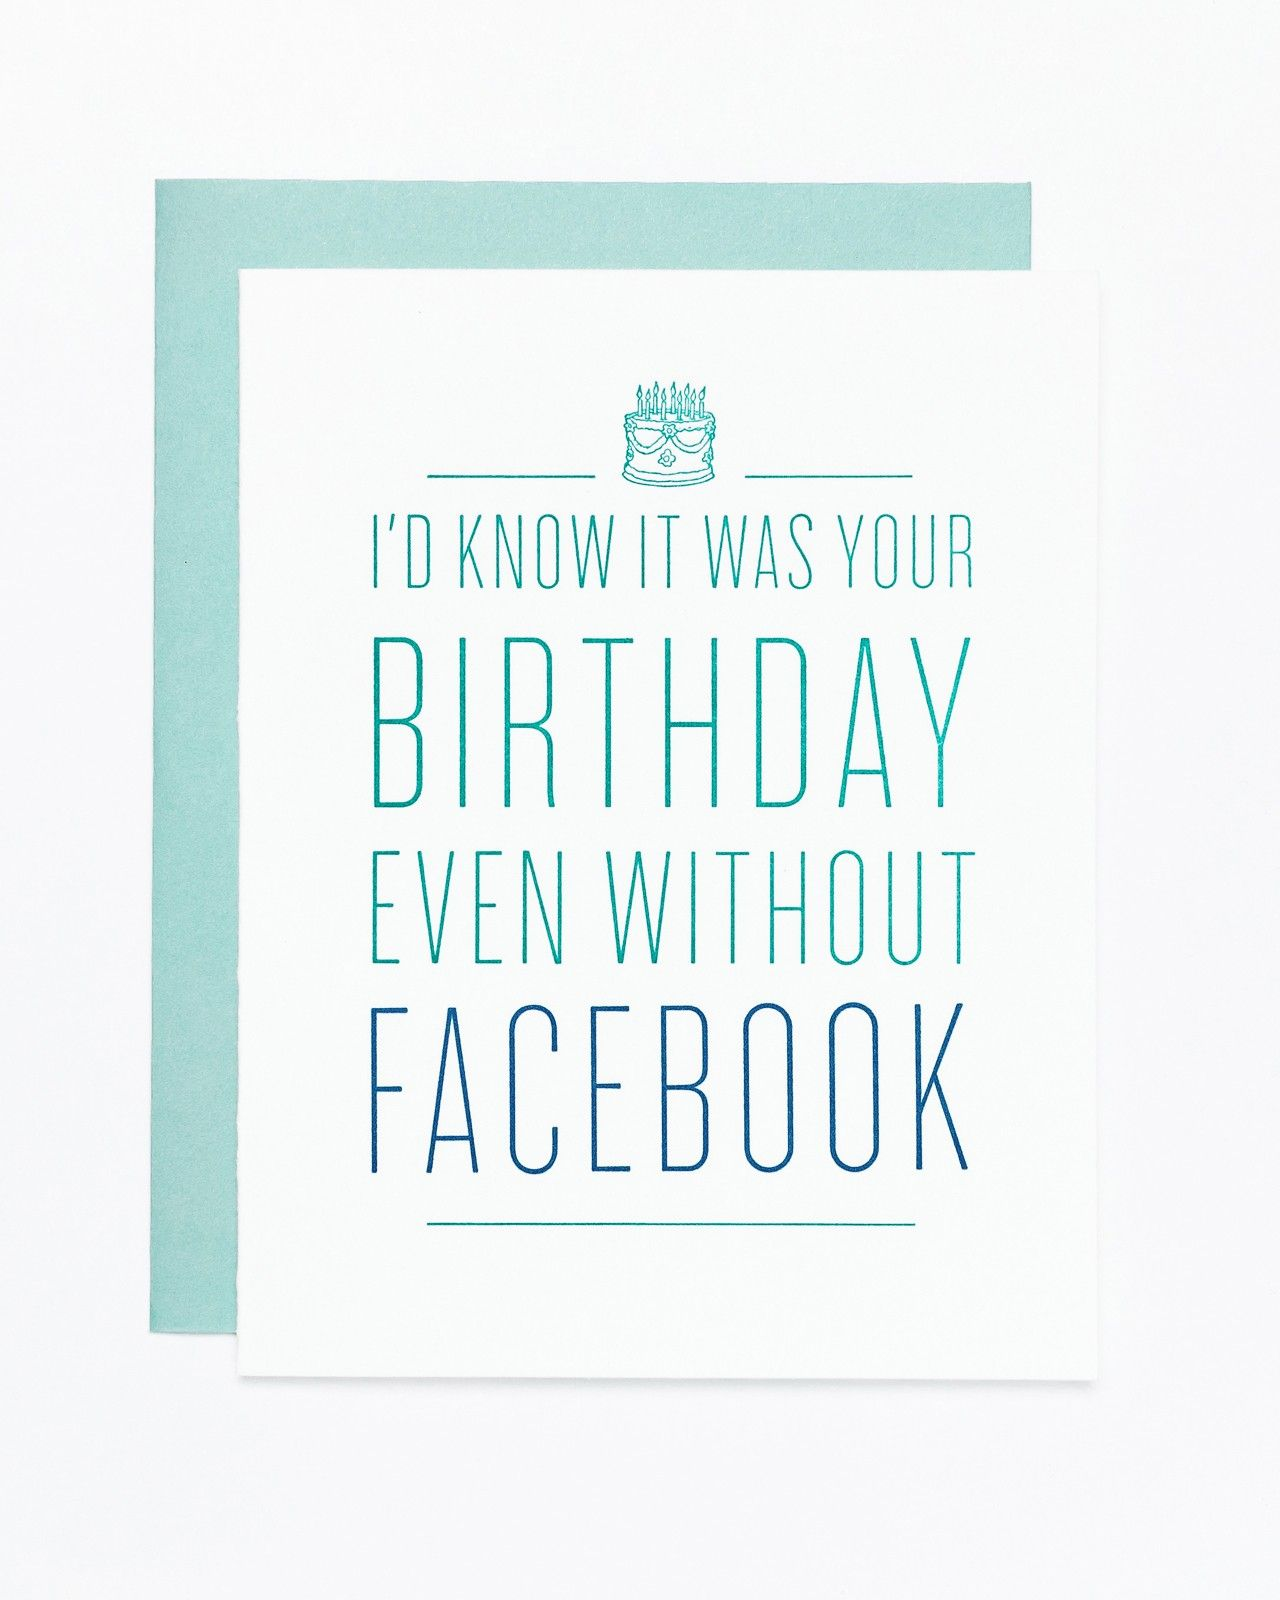 I'd know it was your birthday without Facebook Card by